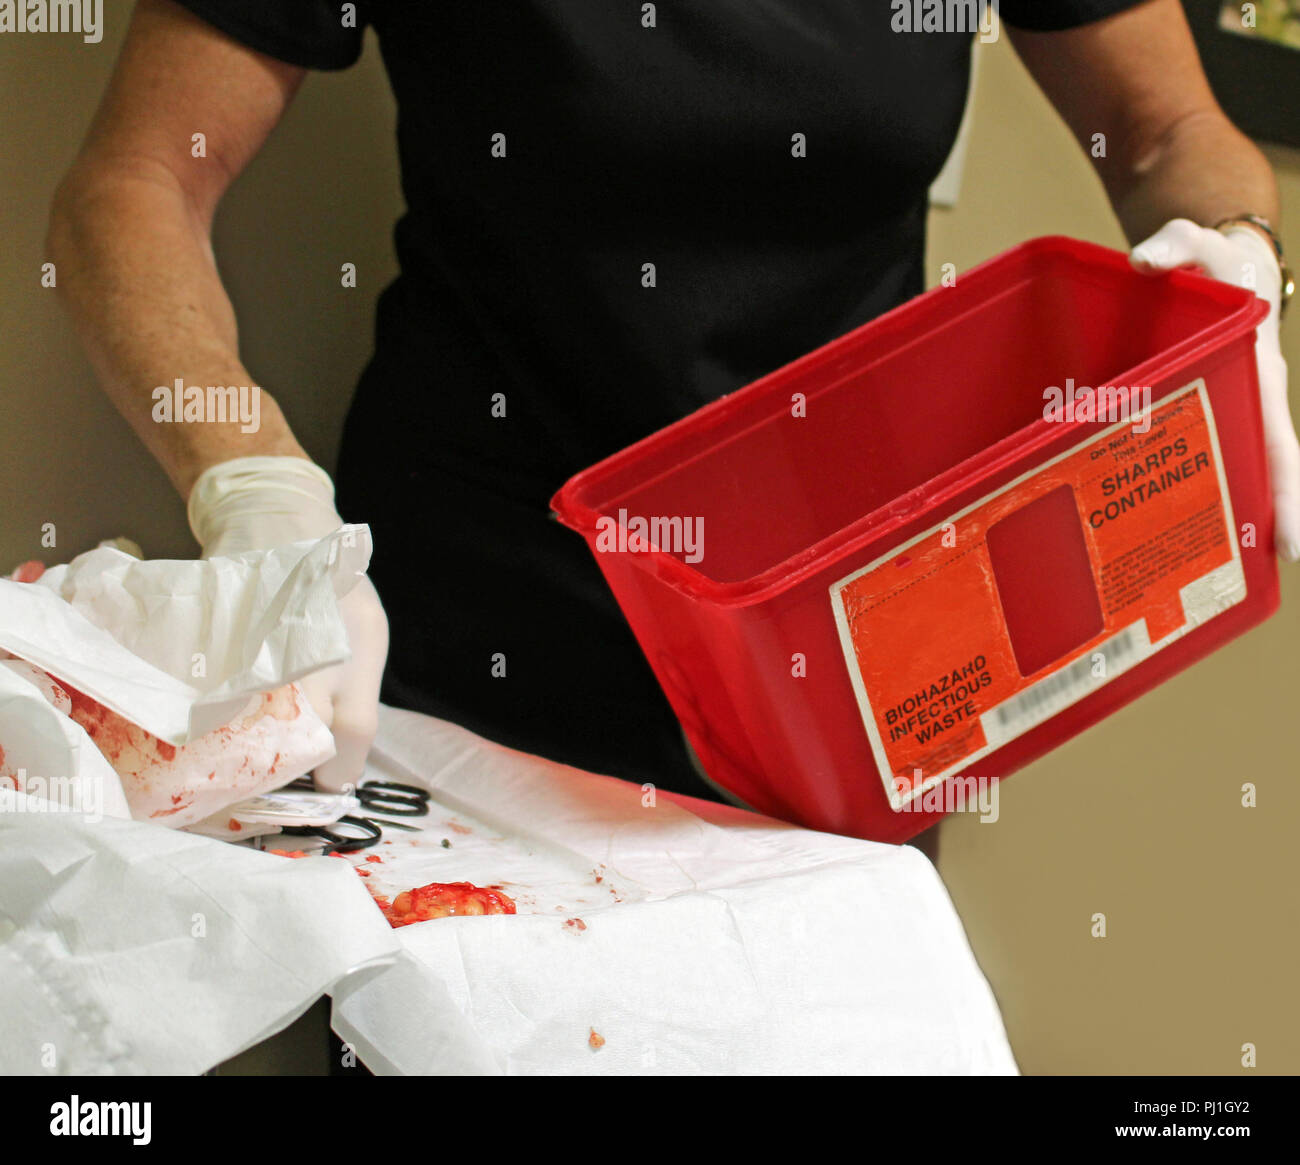 Cleaning up medical waste after a surgery - Stock Image